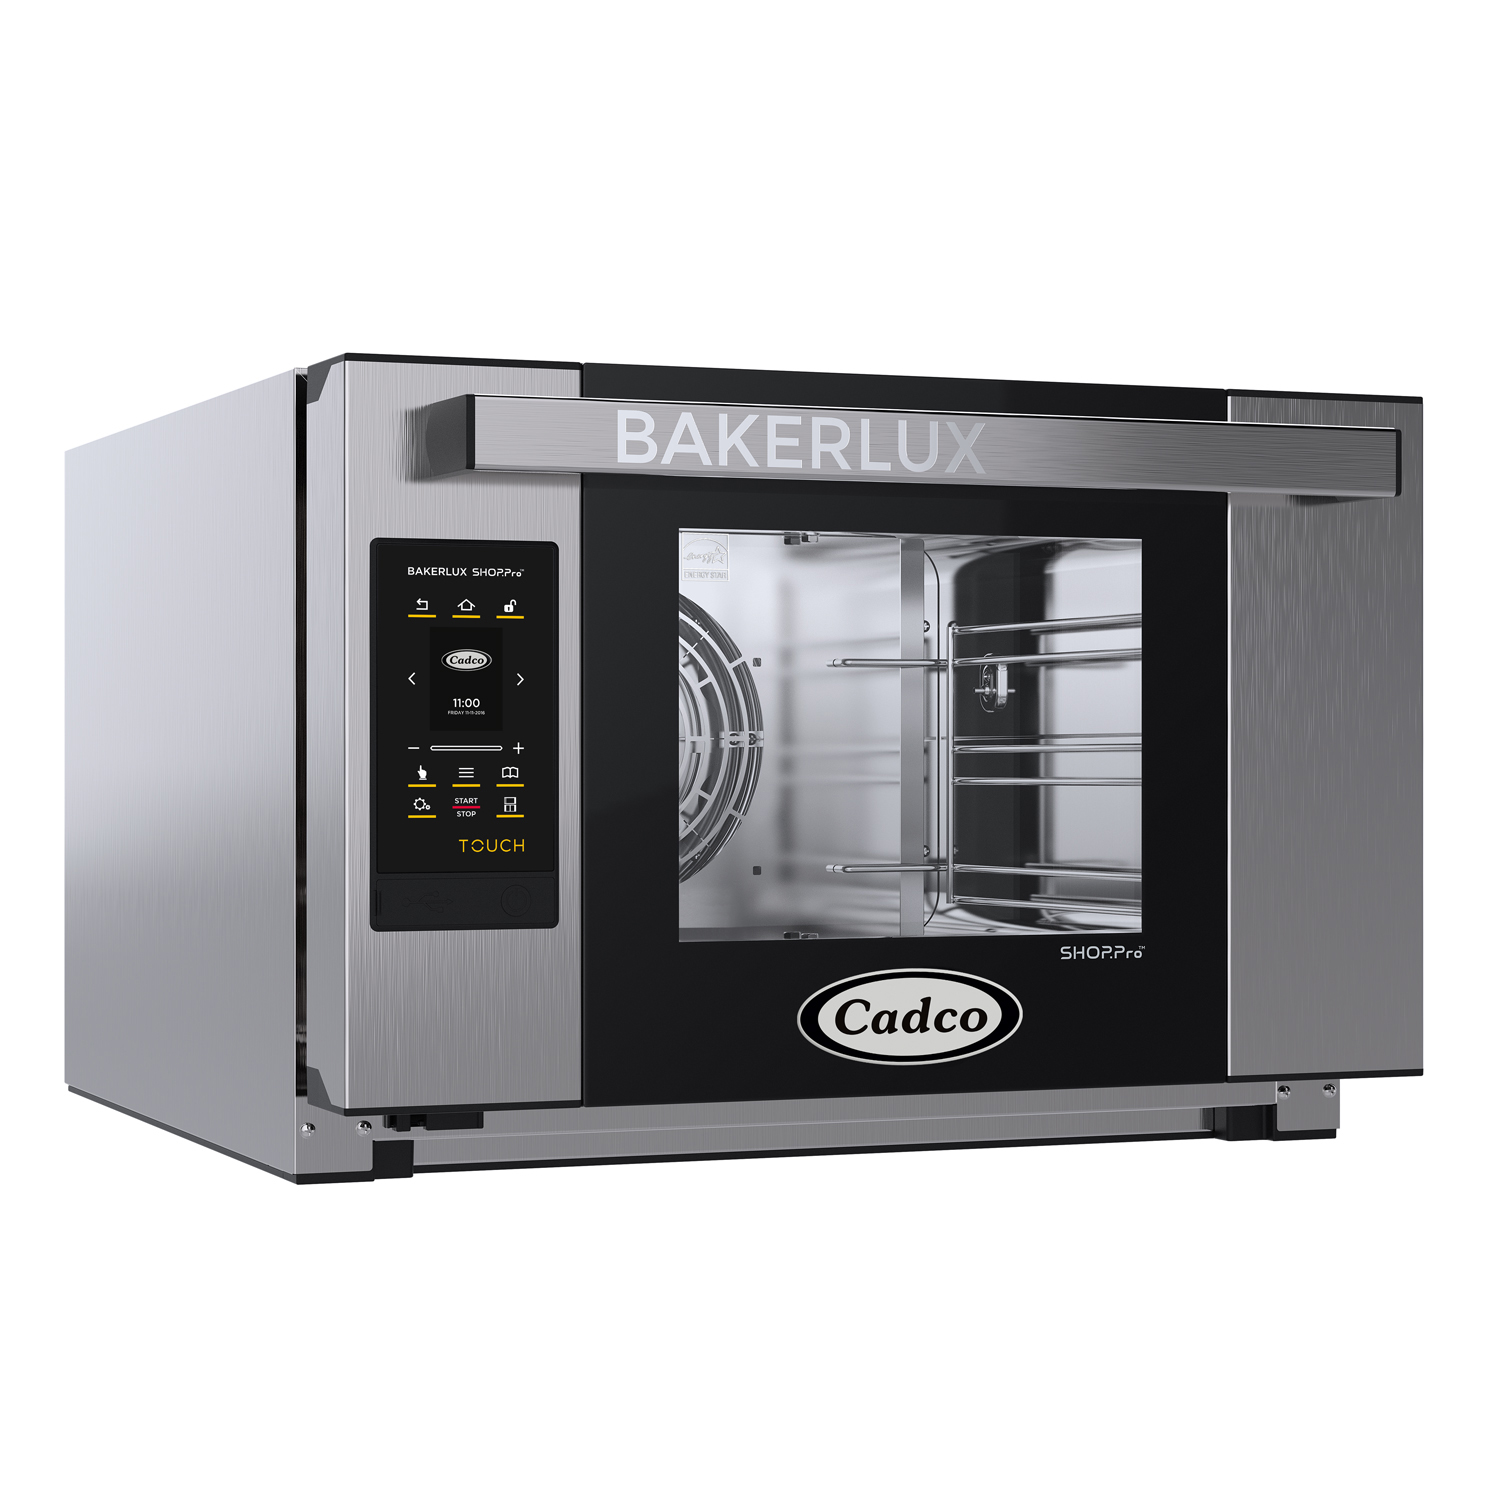 Cadco XAFT-03HS-TD convection oven, electric